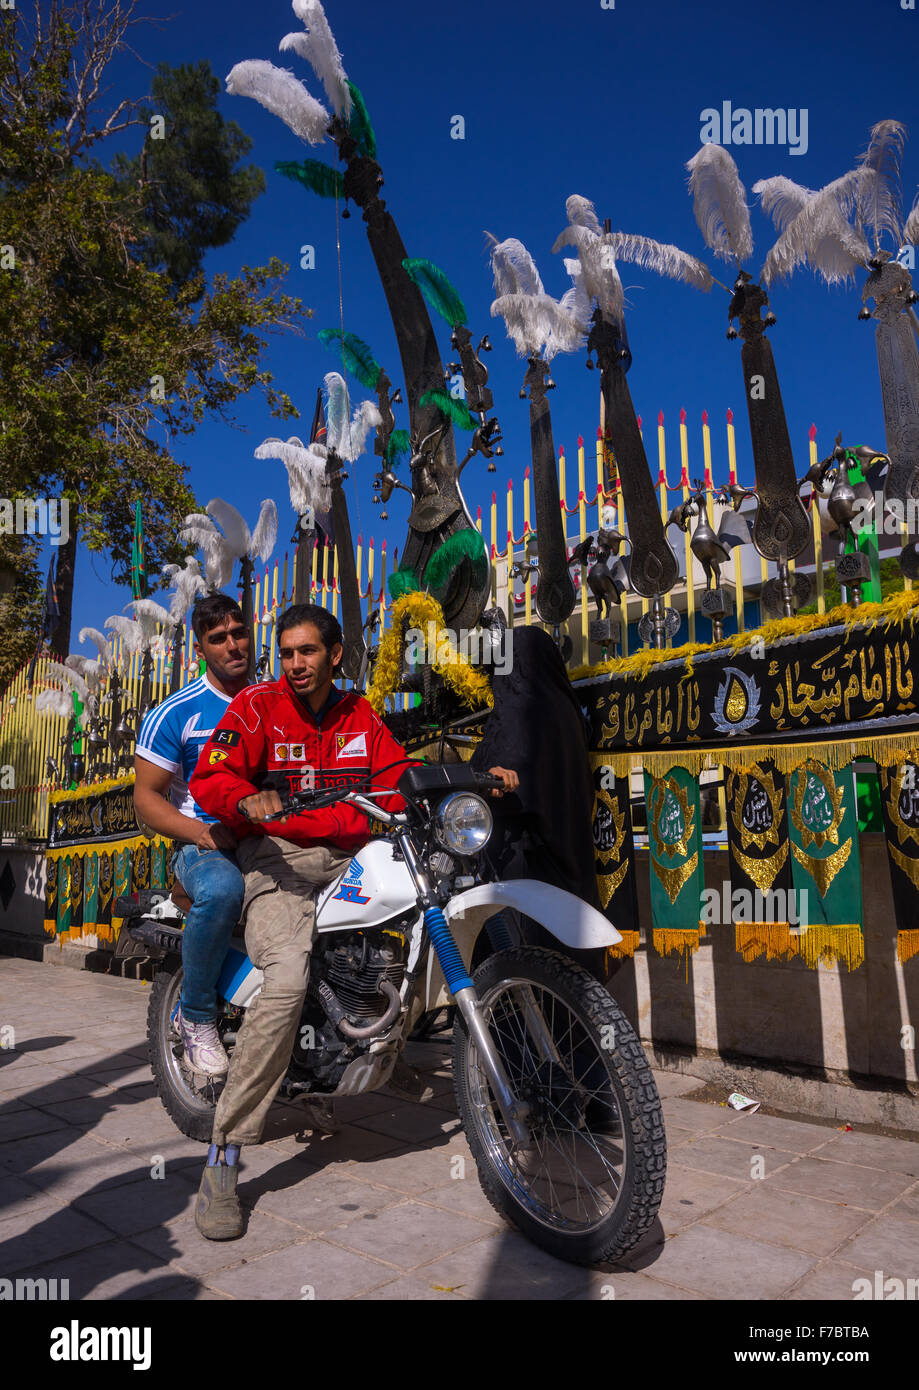 Iranian Men On Mototbike In Front Of An Alam On Tasua Celebration, Lorestan Province, Khorramabad, Iran - Stock Image